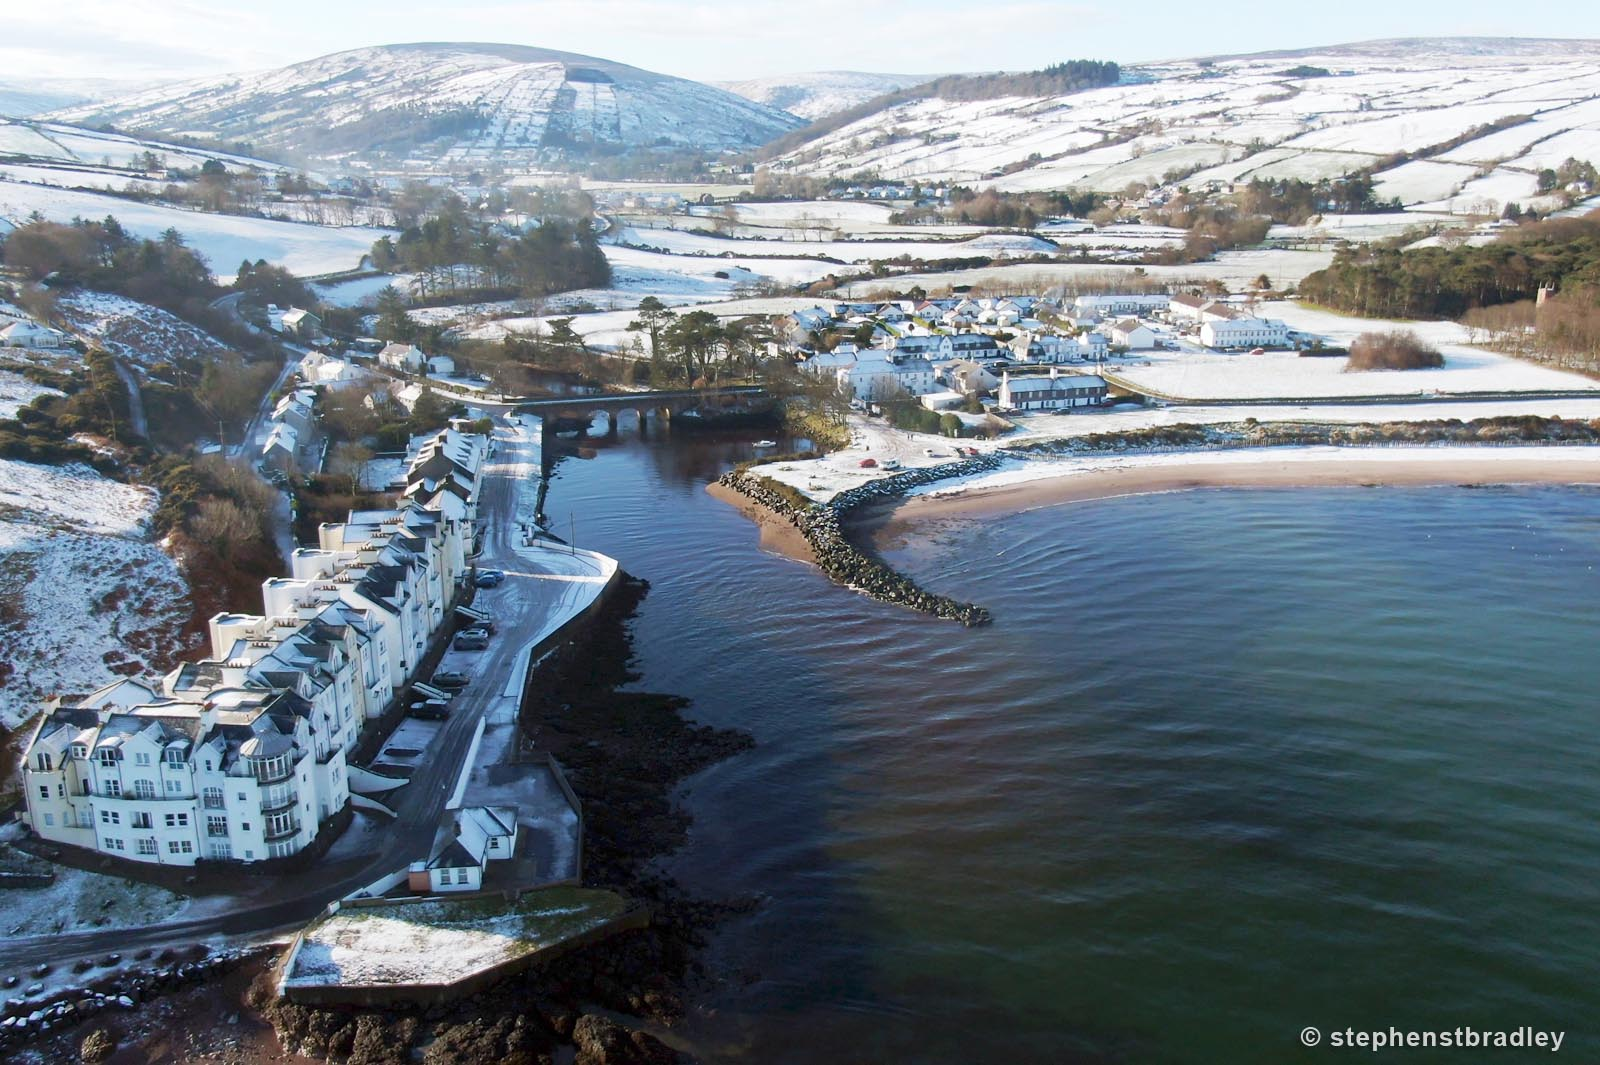 Aerial drone photography and video production services Dublin and Ireland portfolio - Cushendun village under snow in winter, video screenshot 5